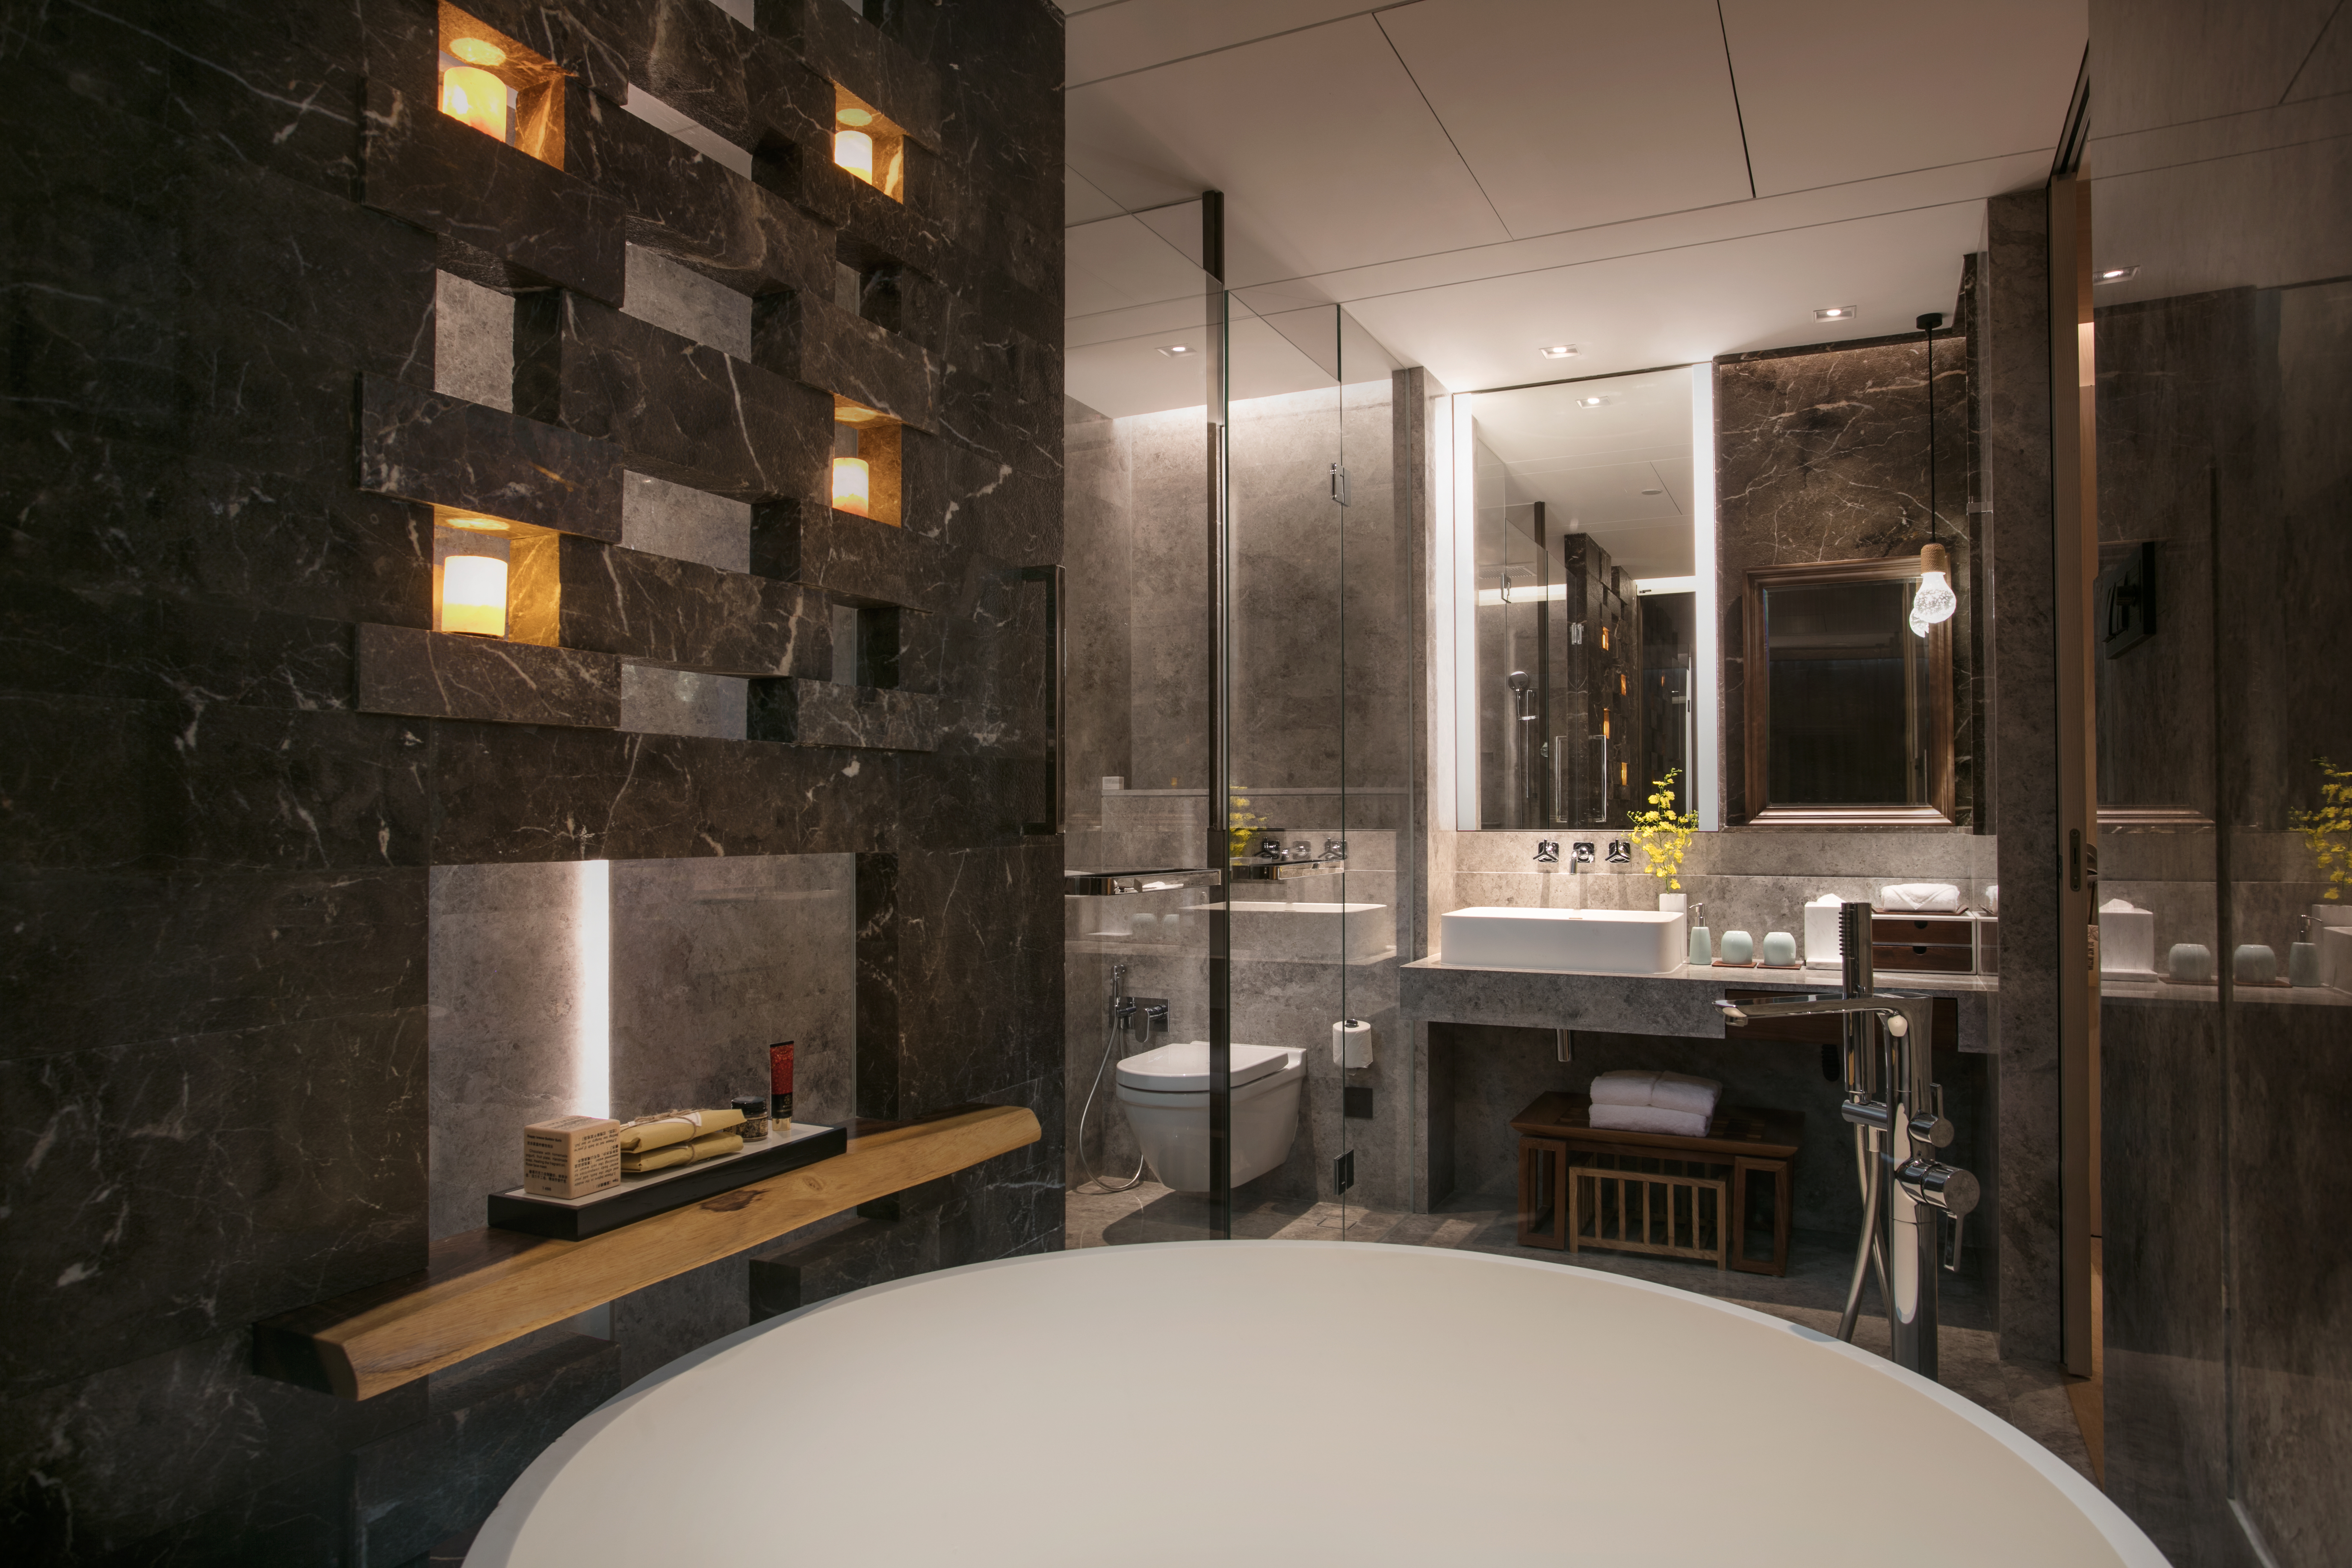 Hirsch Bedner Associates recently designed The Anandi Hotel & Spa Shanghai, with a concept of healing throughout.